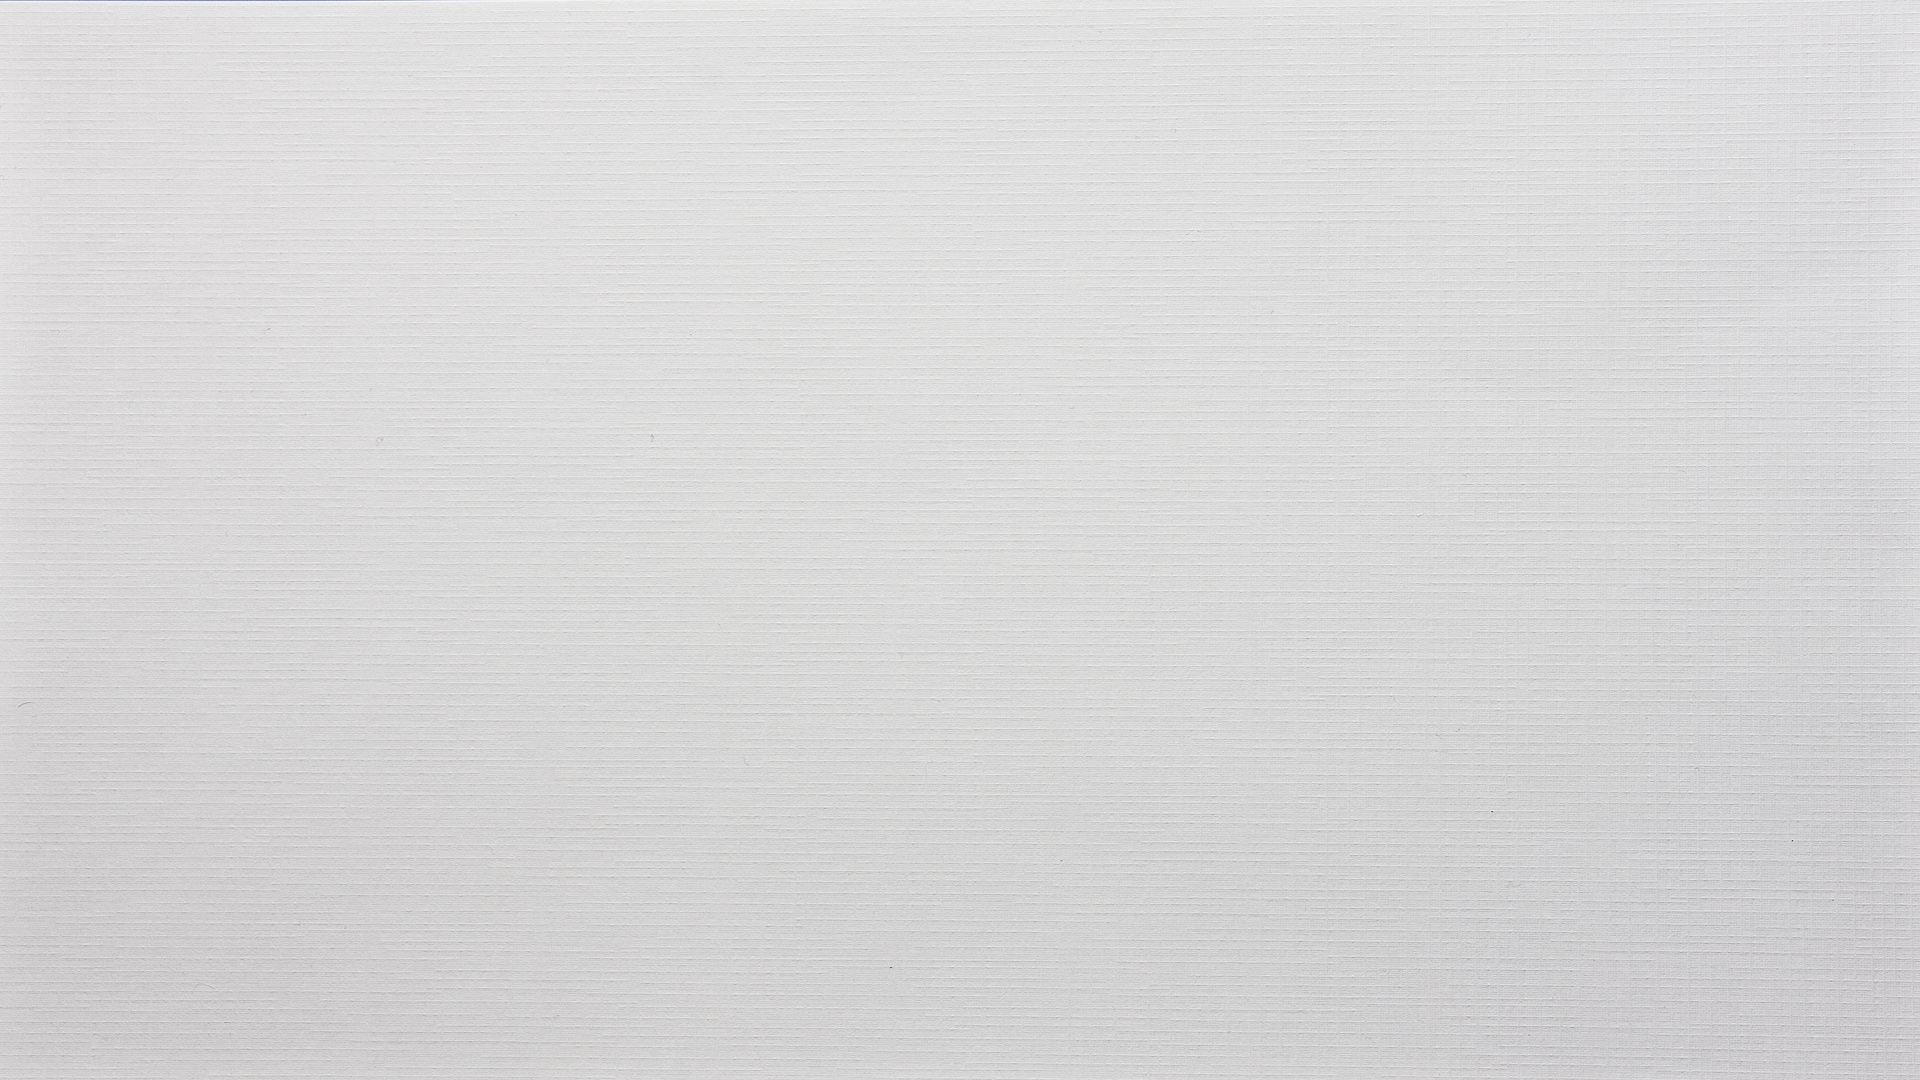 white-paper-background-cardboard-texture-hd